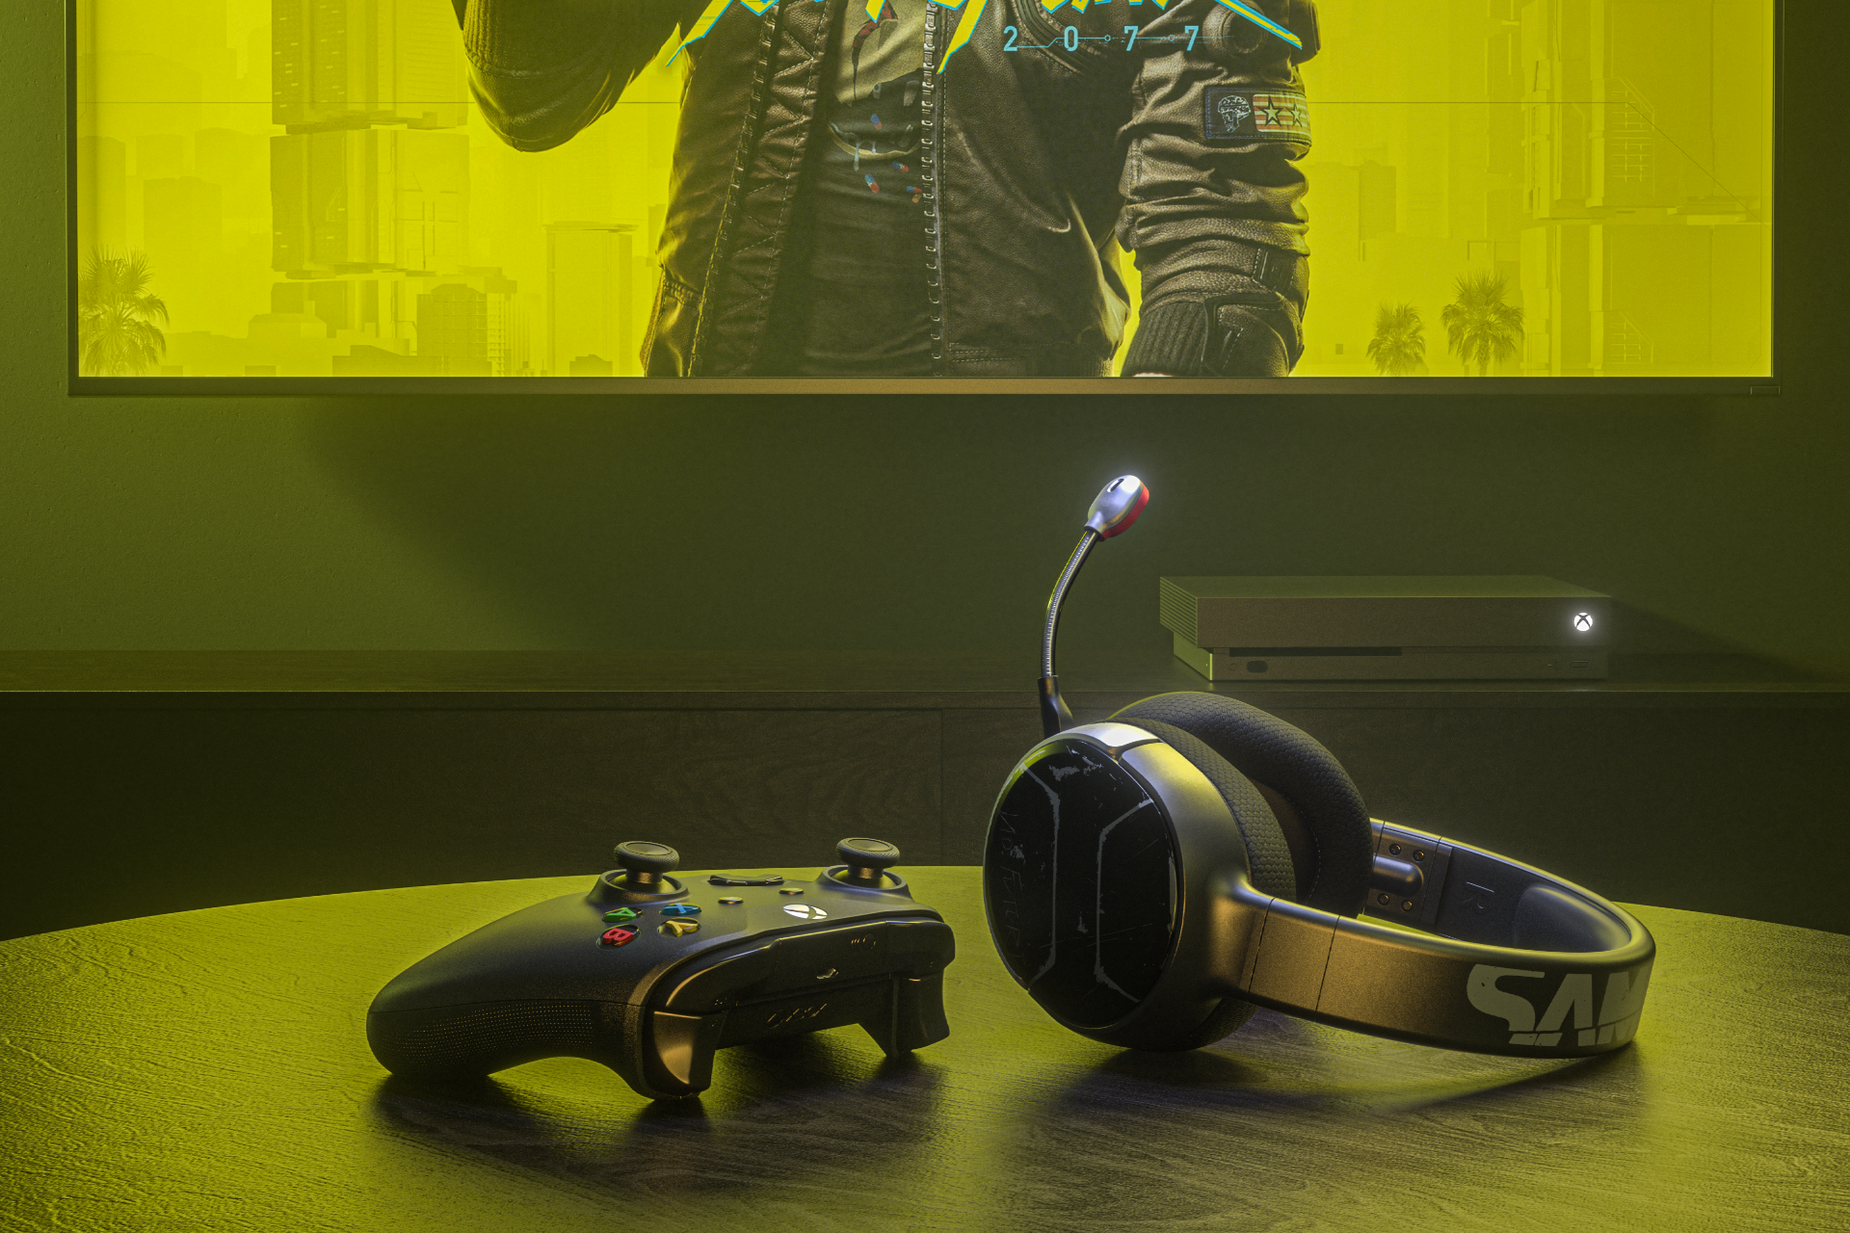 Arctis 1 Wireless for Xbox Cyberpunk Edition gaming headset on table with an Xbox controller and an Xbox game console in the background